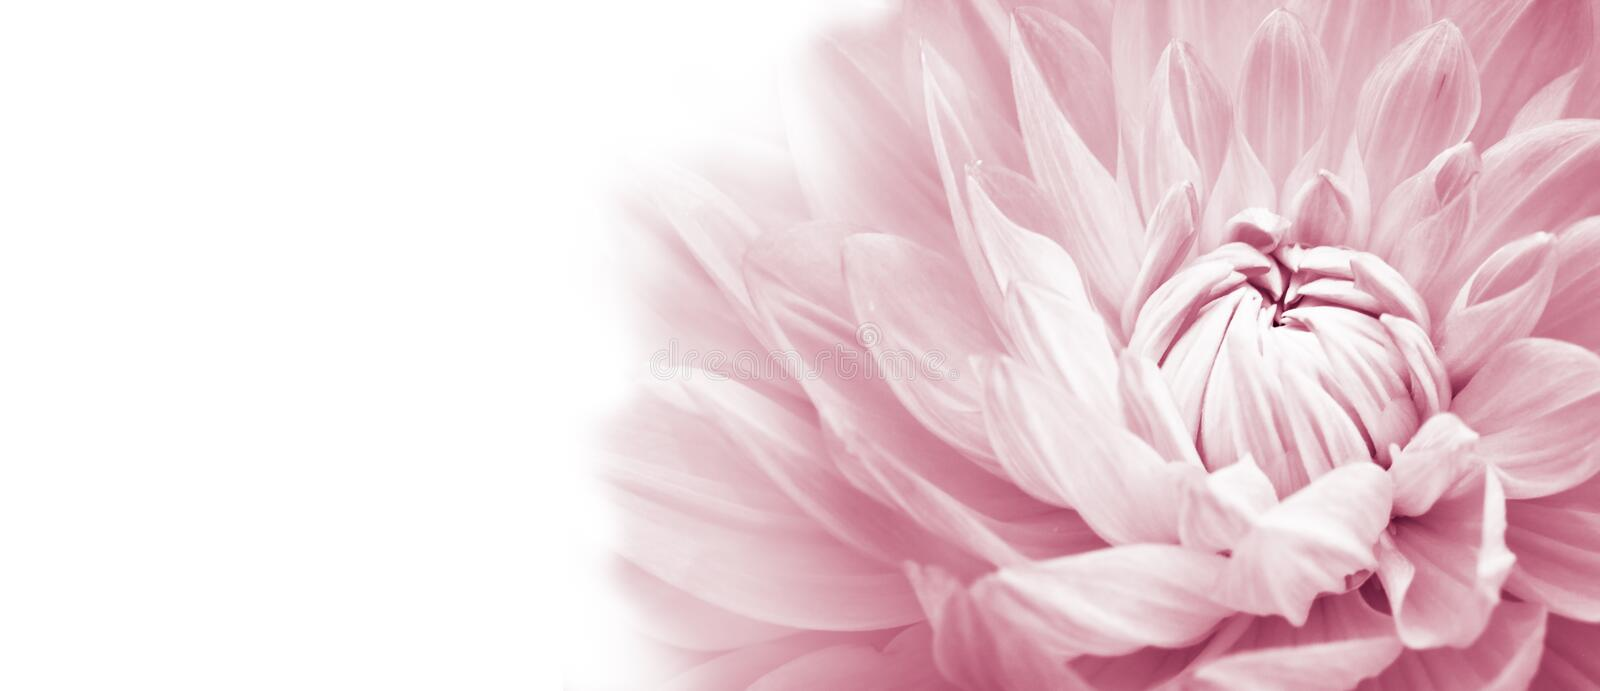 White and pink colourful dahlia flower macro photo with light pastel colors in white wide banner empty background panorama. With large negative space for text royalty free stock image